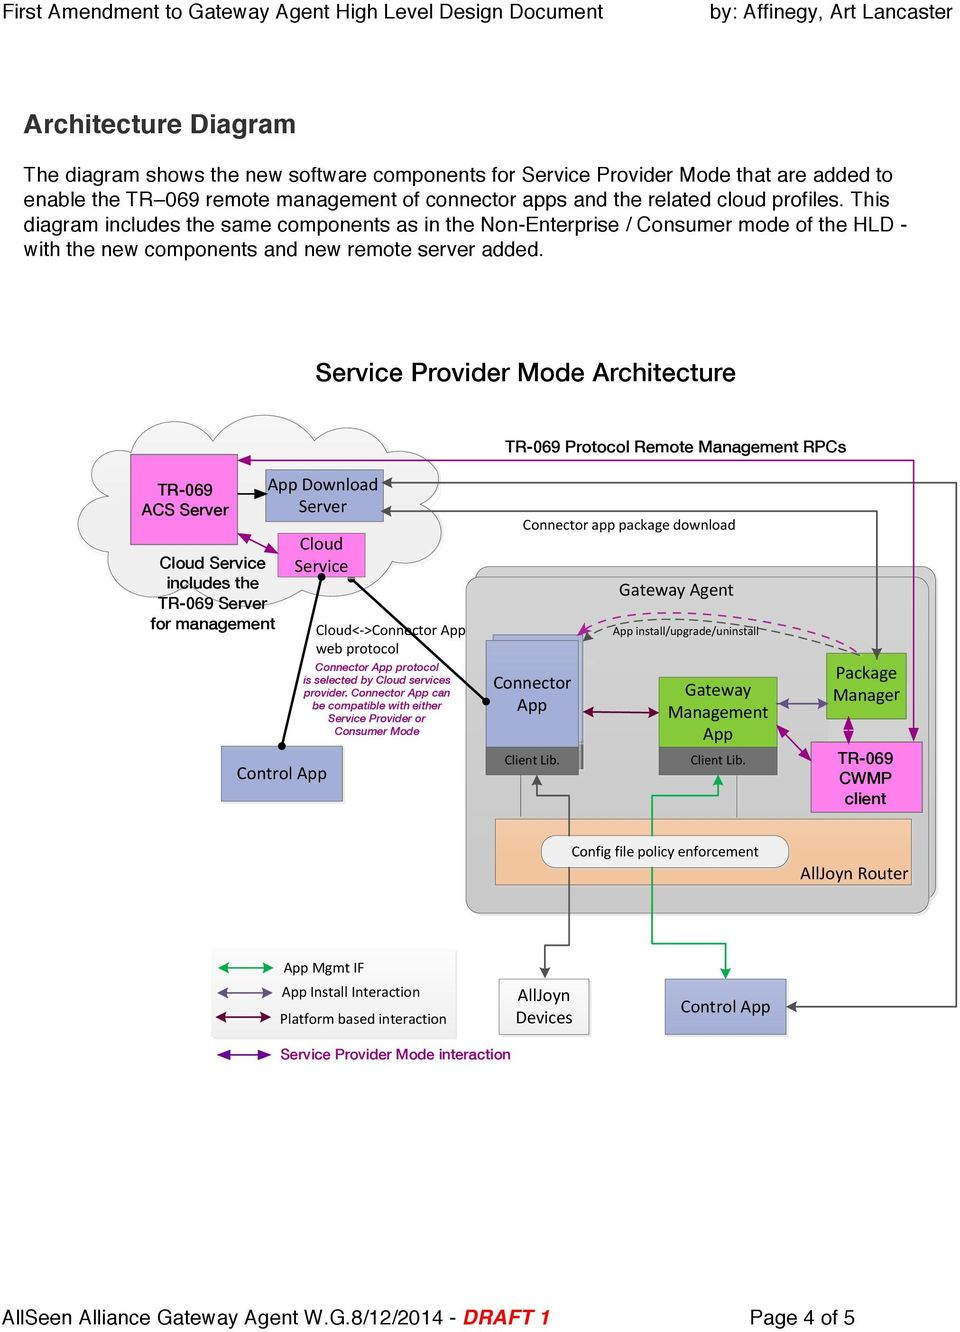 Service Prvider Mde Architecture TR-069 Prtcl Remte Management RPCs TR-069 ACS Server Clud Service includes the TR-069 Server fr management App%Dwnlad% Server Clud% Service% Cntrl%App Clud<G>Cnnectr